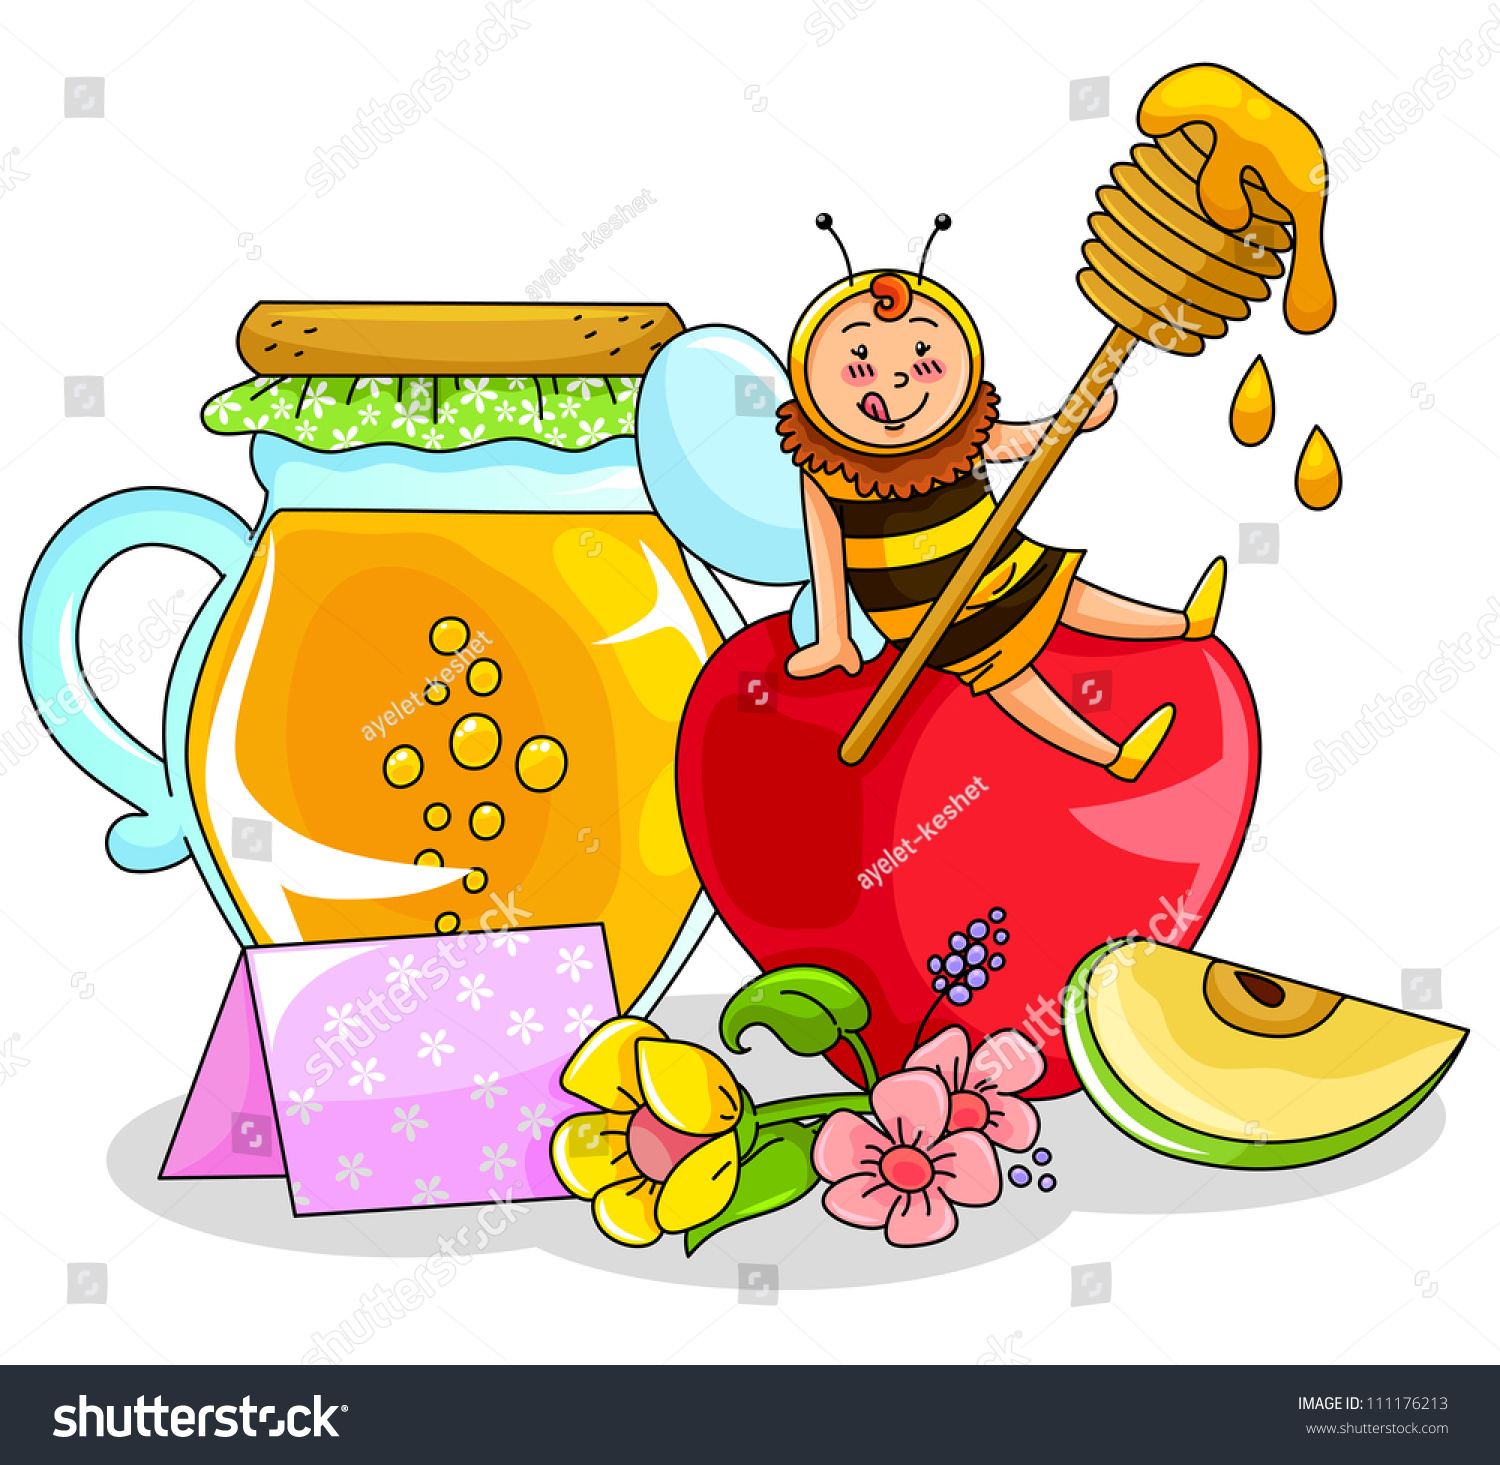 bee sitting on an apple next to a honey jar symbols of the jewish new